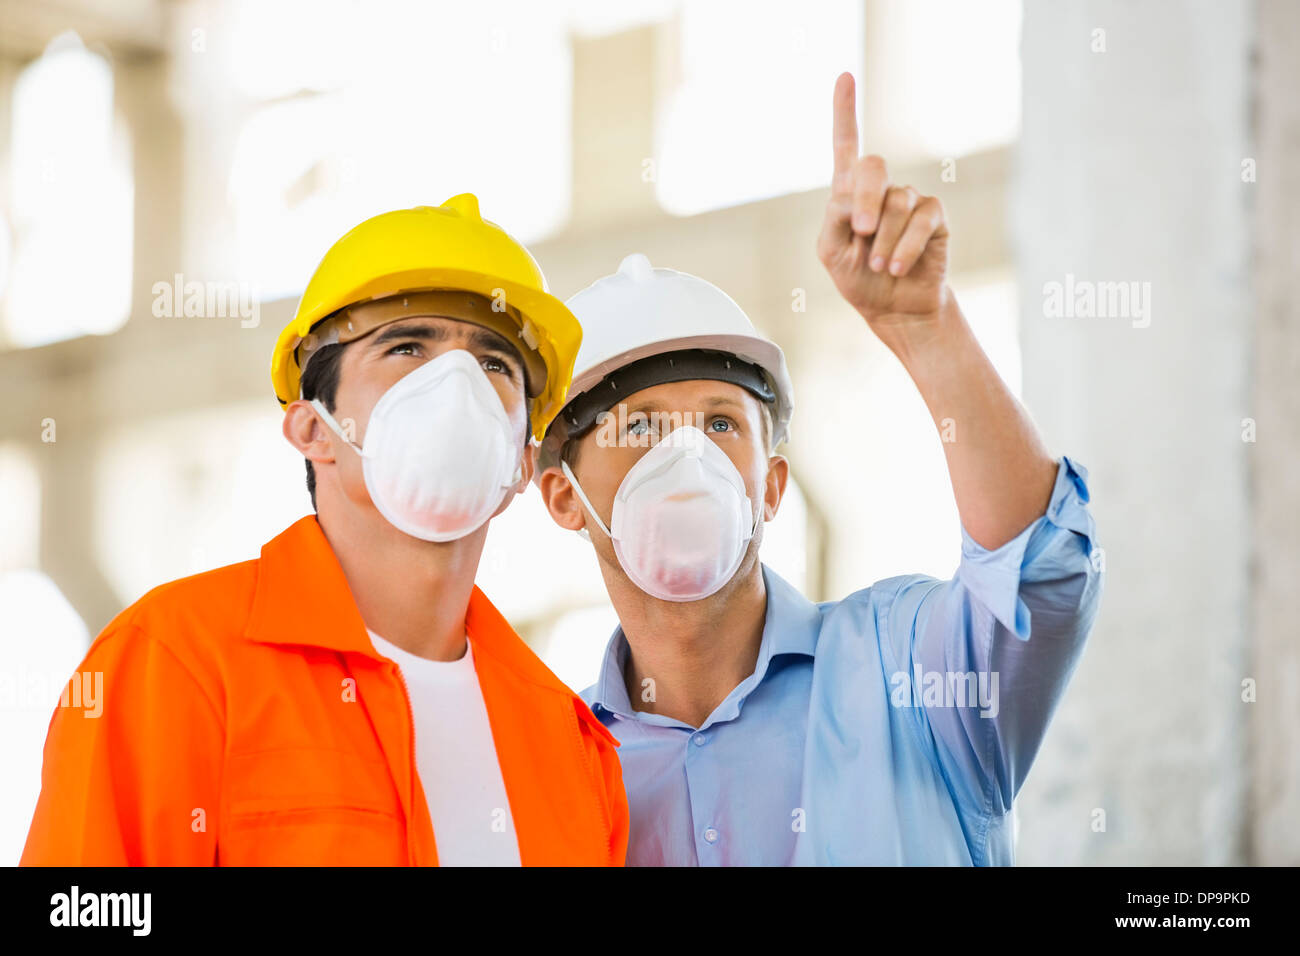 Male architects wearing protective mask while working at construction site - Stock Image